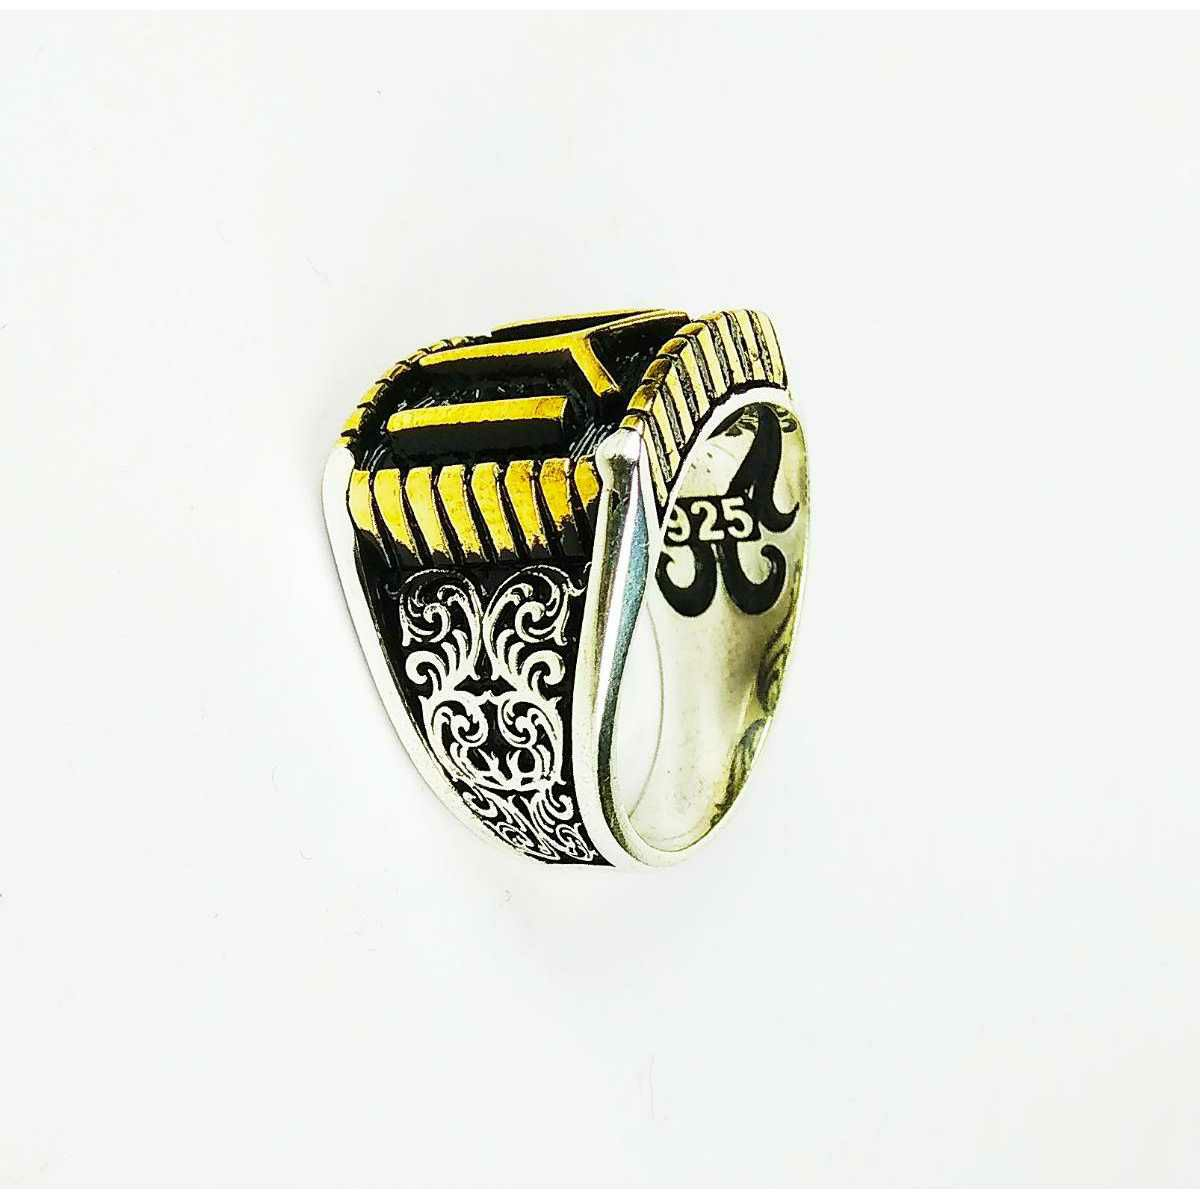 Expensive 925 Silver IYI Gents Ring